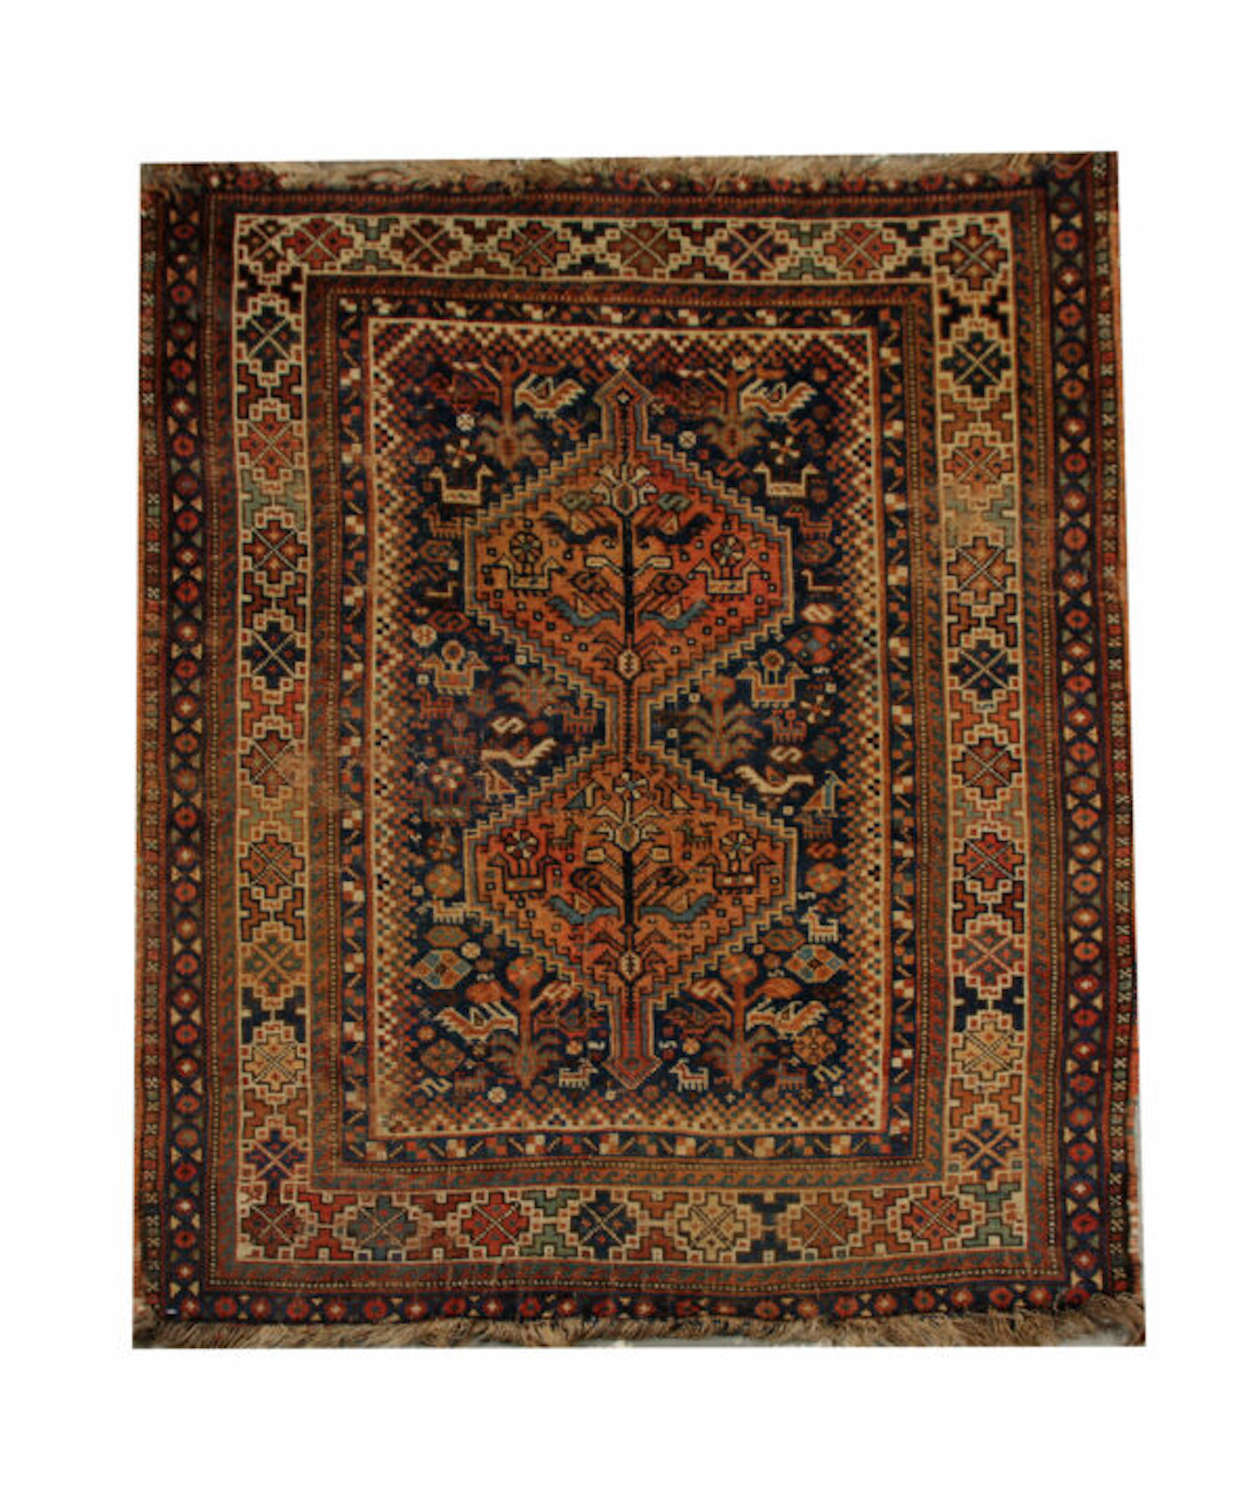 Antique Carpet, Persian Hand Woven Rug, Tribal Rug By Khamseh